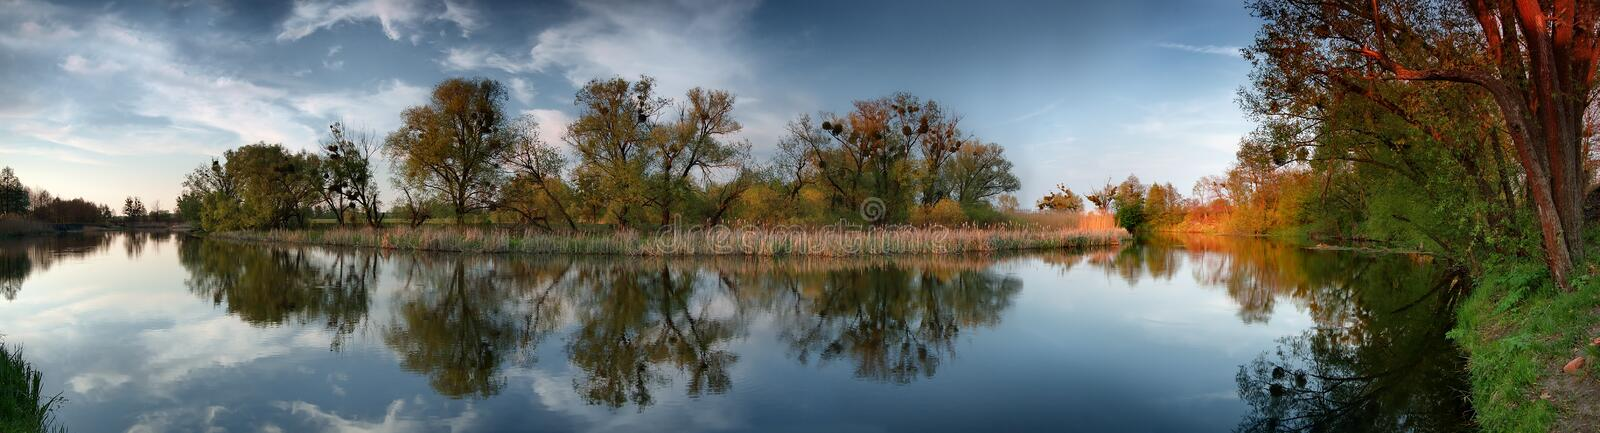 Trees on river royalty free stock photo